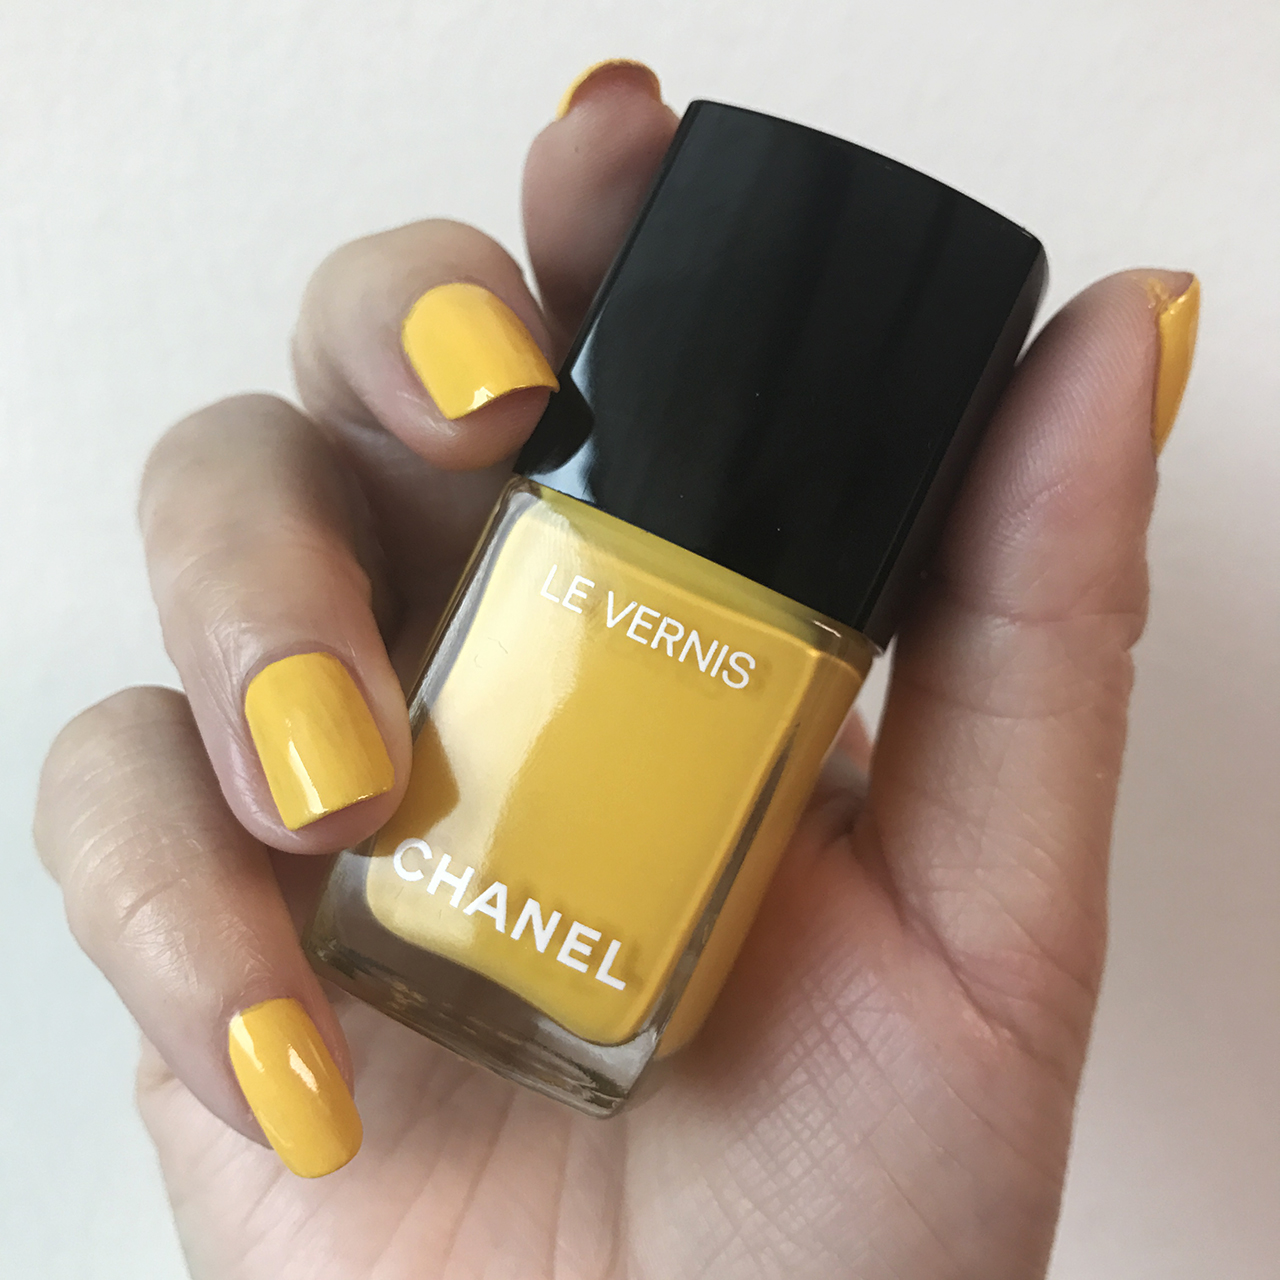 Chanel Le Vernis Giallo Napoli from Neapolis Collection